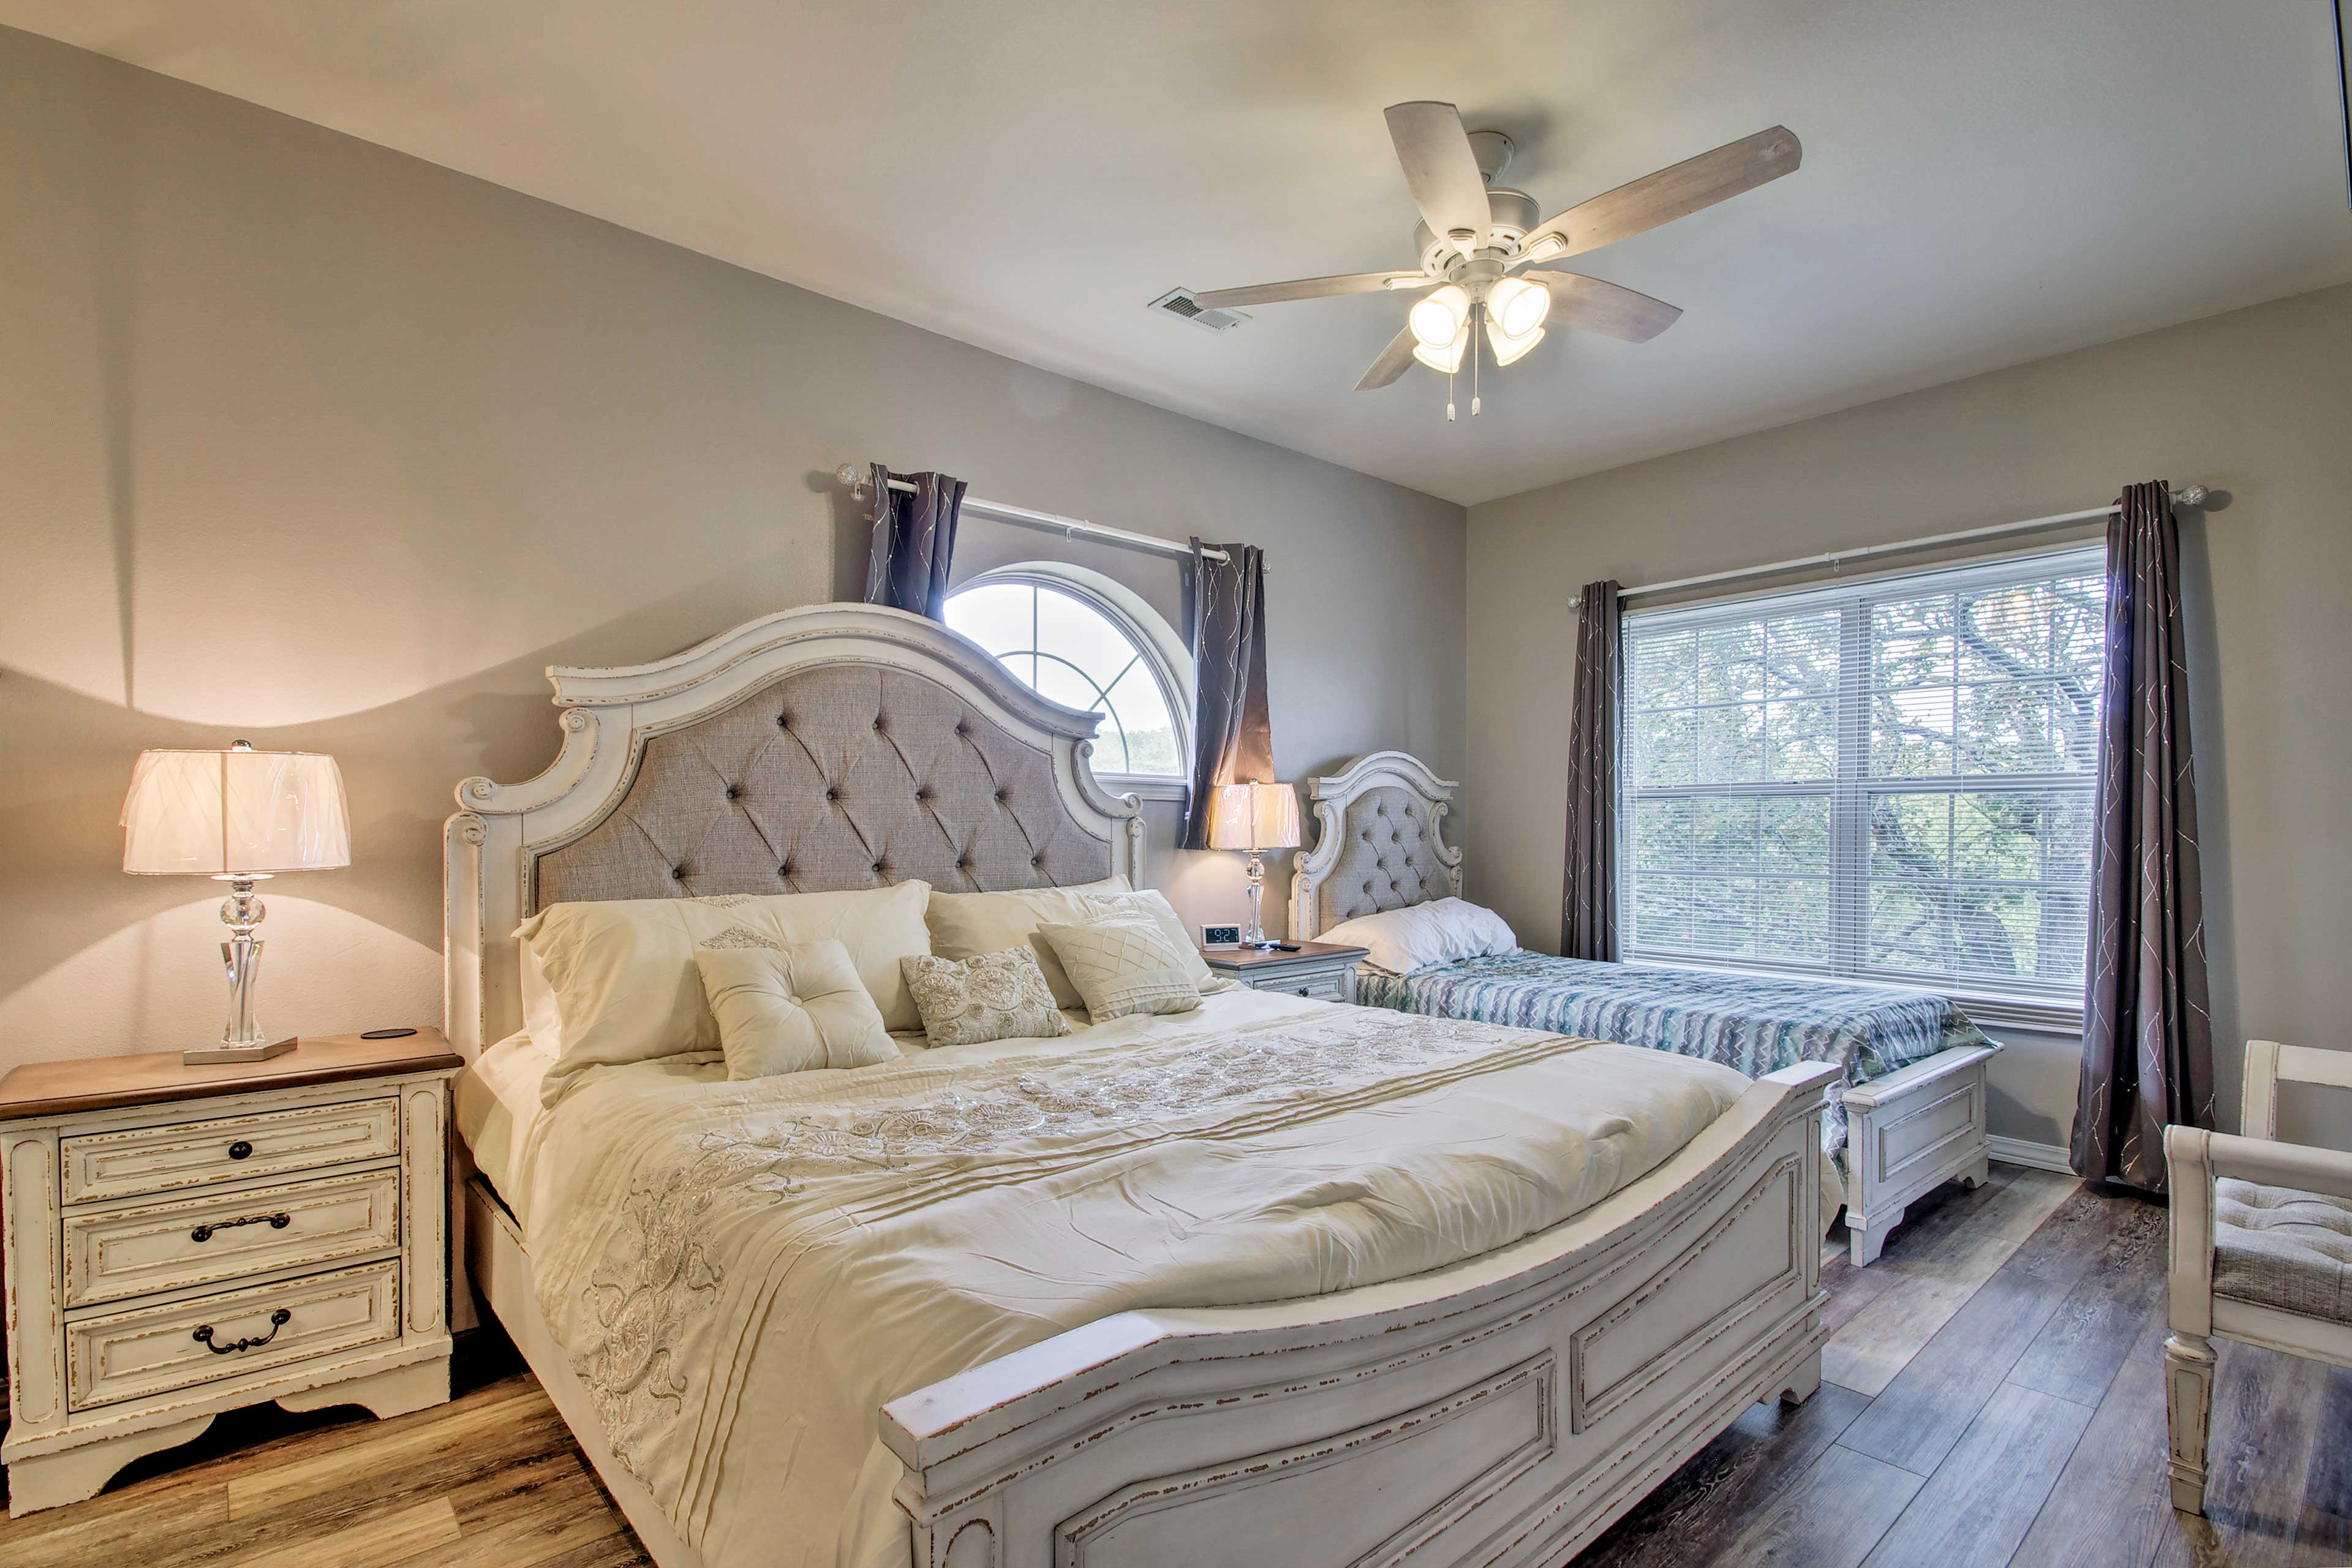 The third bedroom features a king-sized bed and a twin bed.